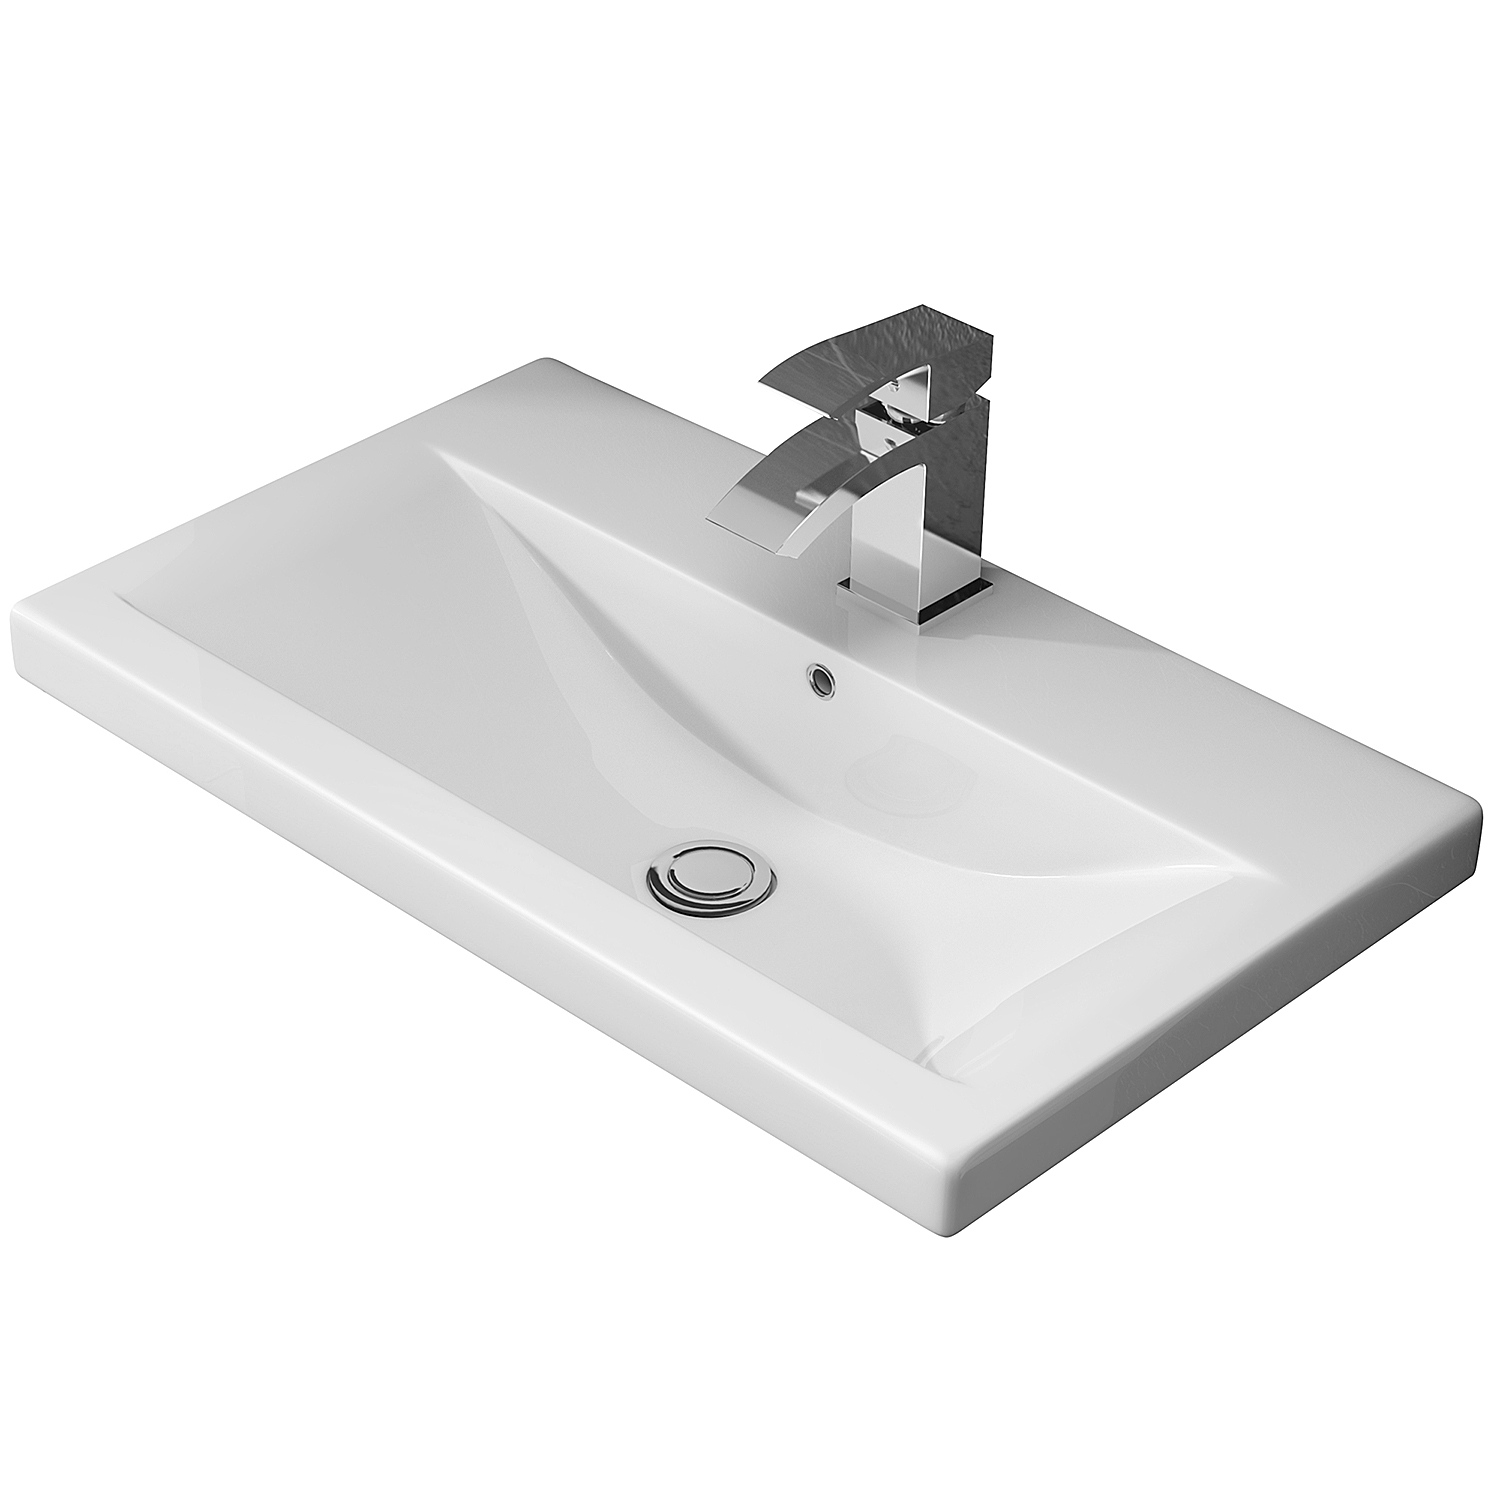 hudson-reed_whit-basin1-500mm_cabinet_wall-hung-CST975_basin.jpg